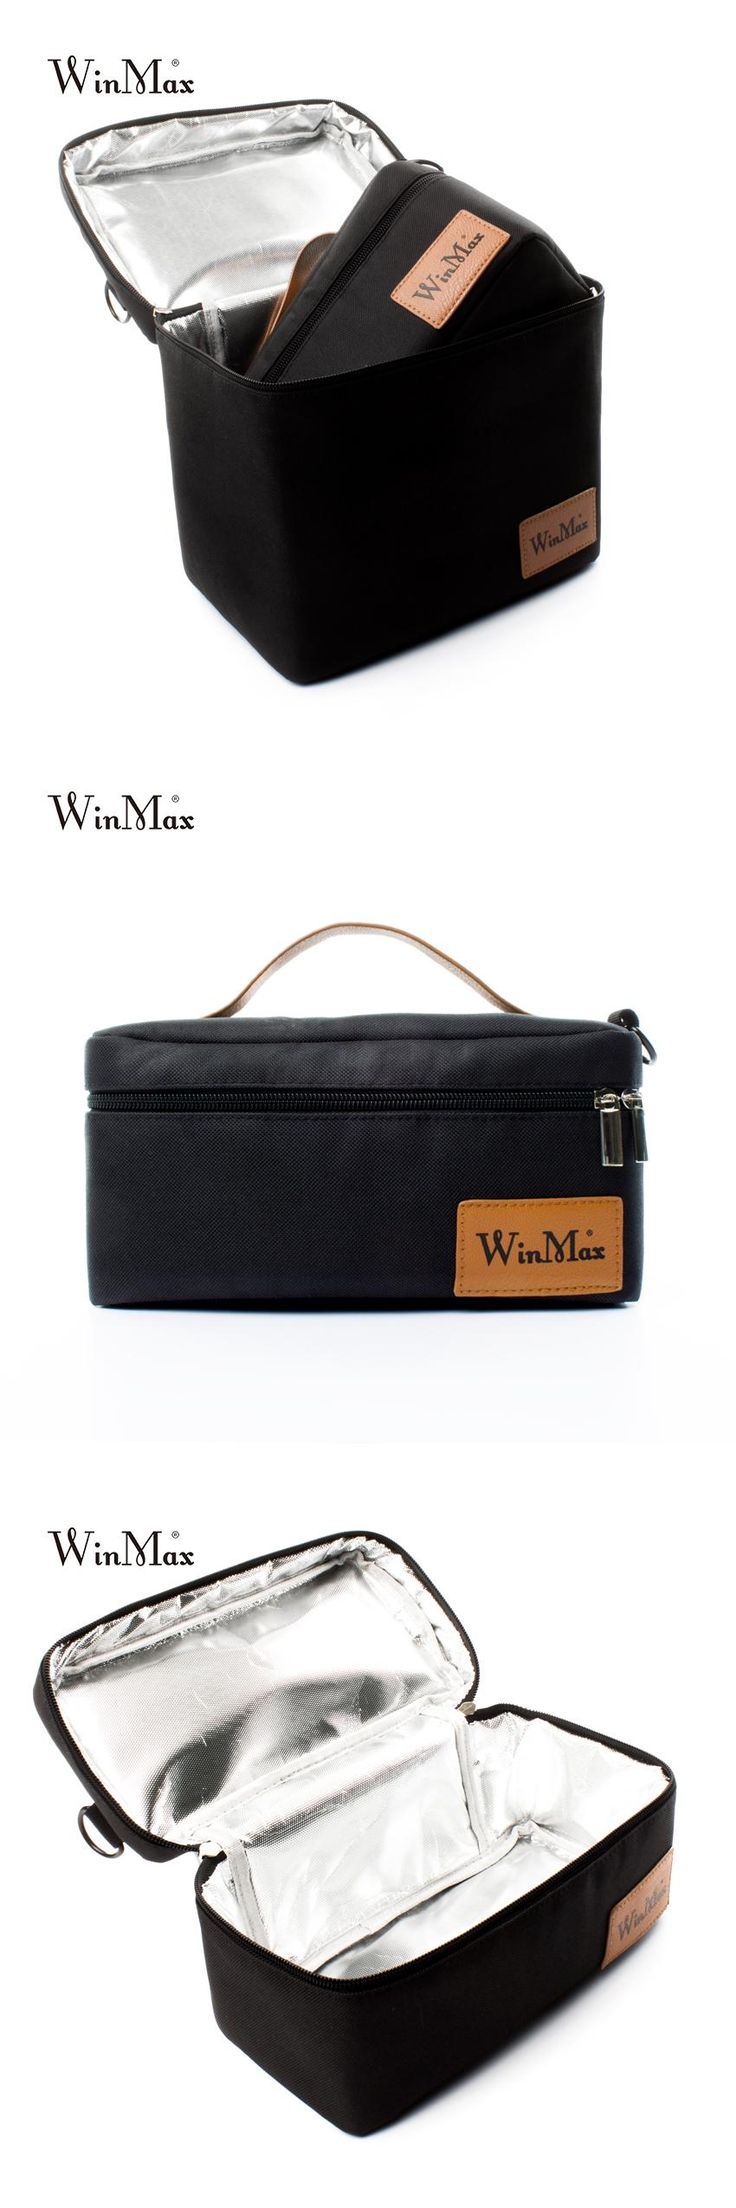 [Visit to Buy] Winmax Large Insulated Picnic ice Cooler Bag 2 sets pizza Cakes delivery black Lunch Bags Thermal Bags for Food basket Handbags #Advertisement